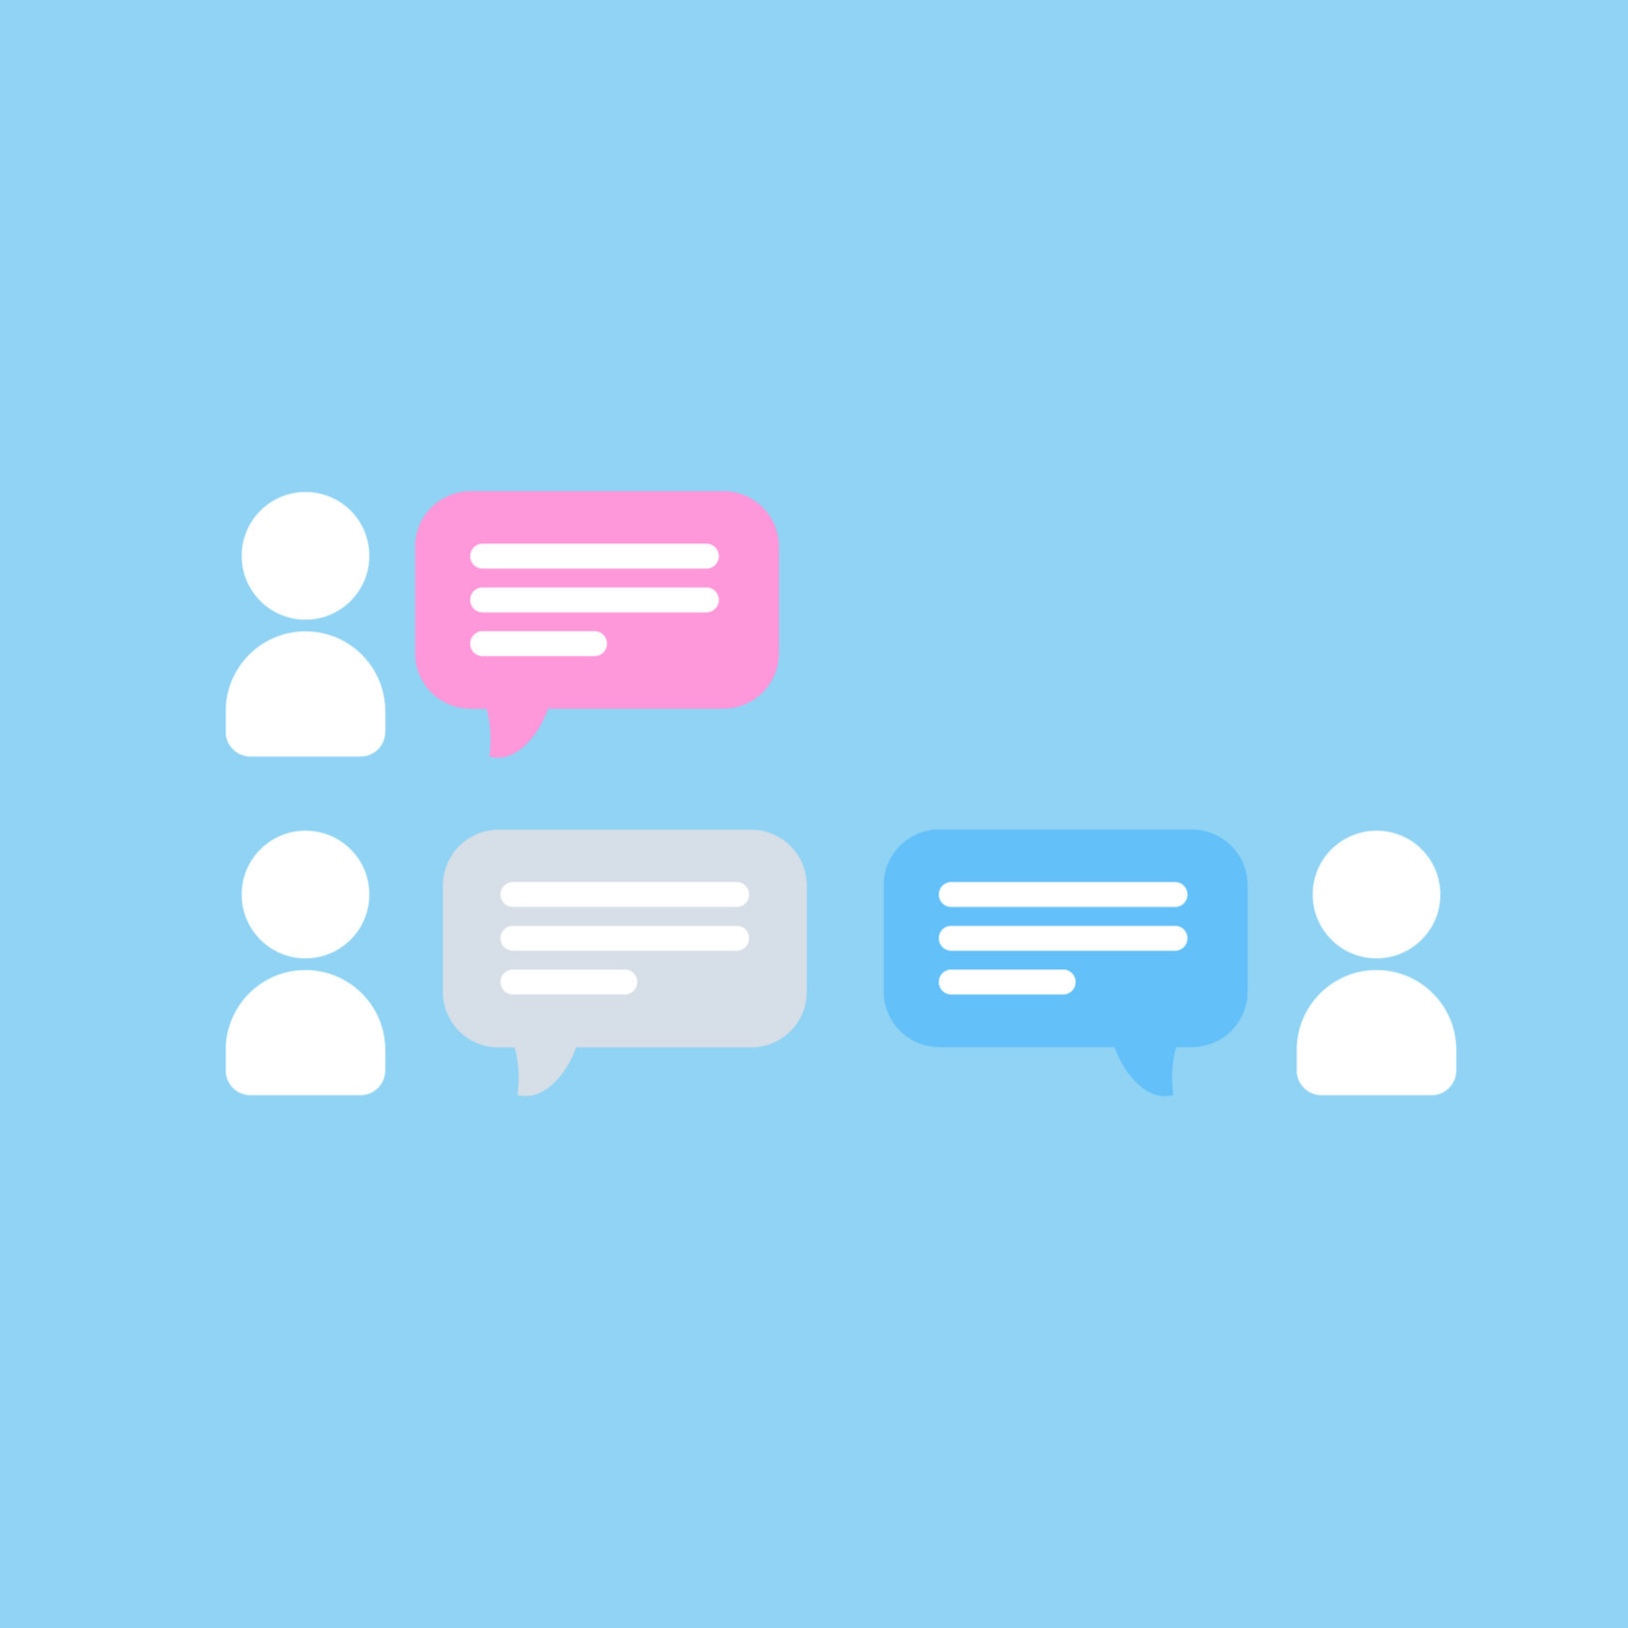 Group Chats - Chat with as many team members as you want in your designated chat channel for each group board you create.